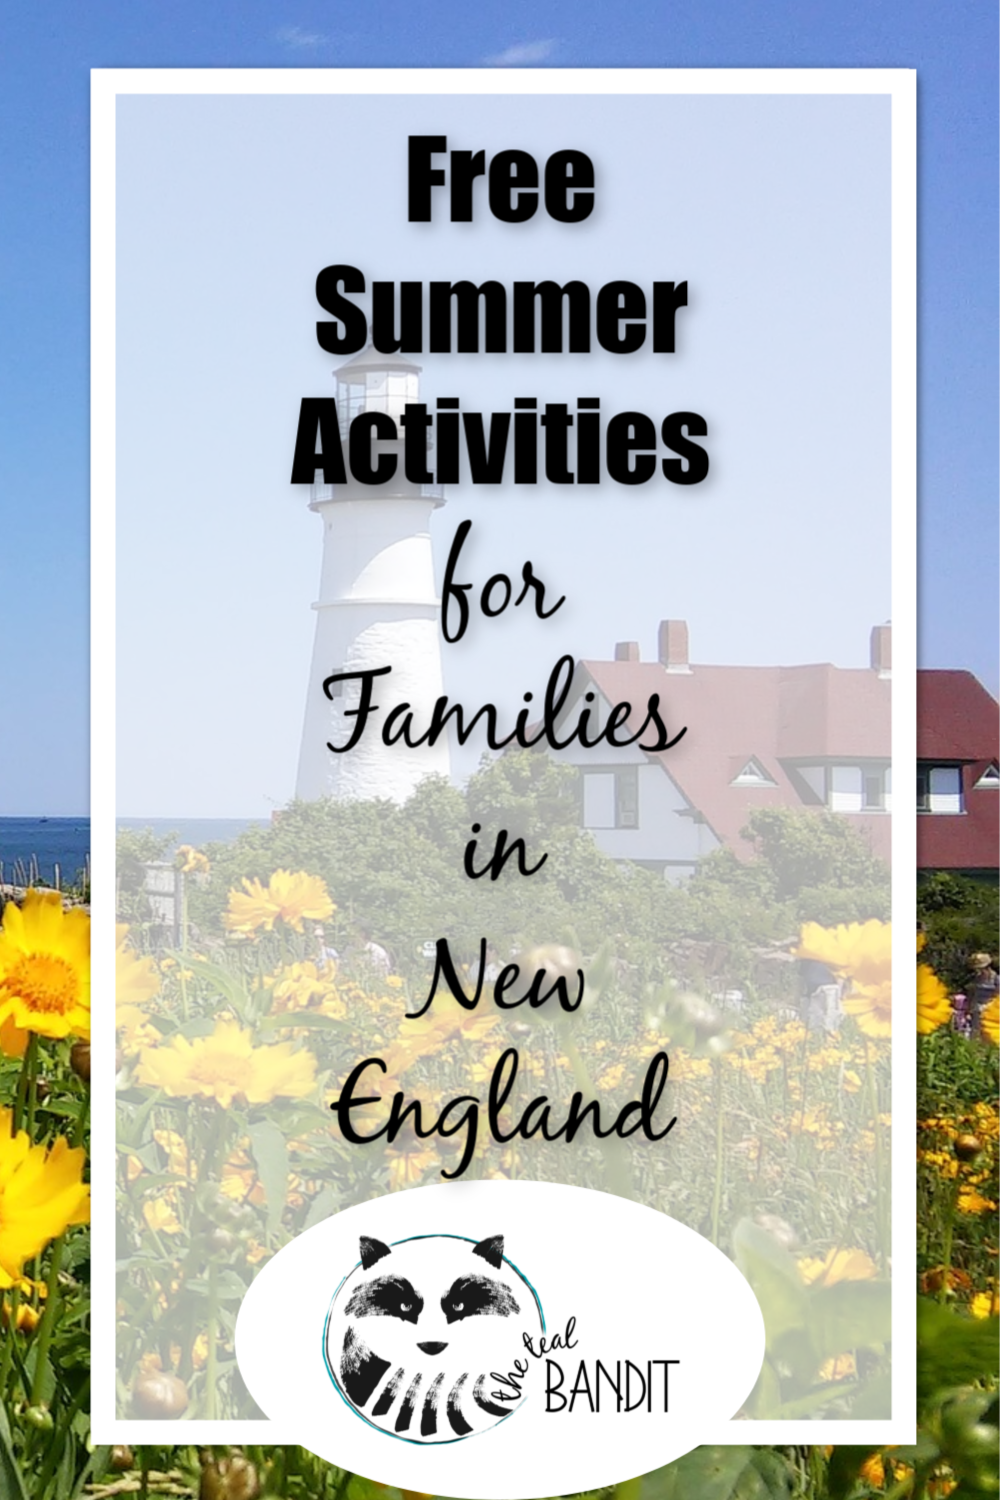 Summer doesn't have to be expensive in New England when you are with your family.  Check out this list of fun free family activities in all the New England states.